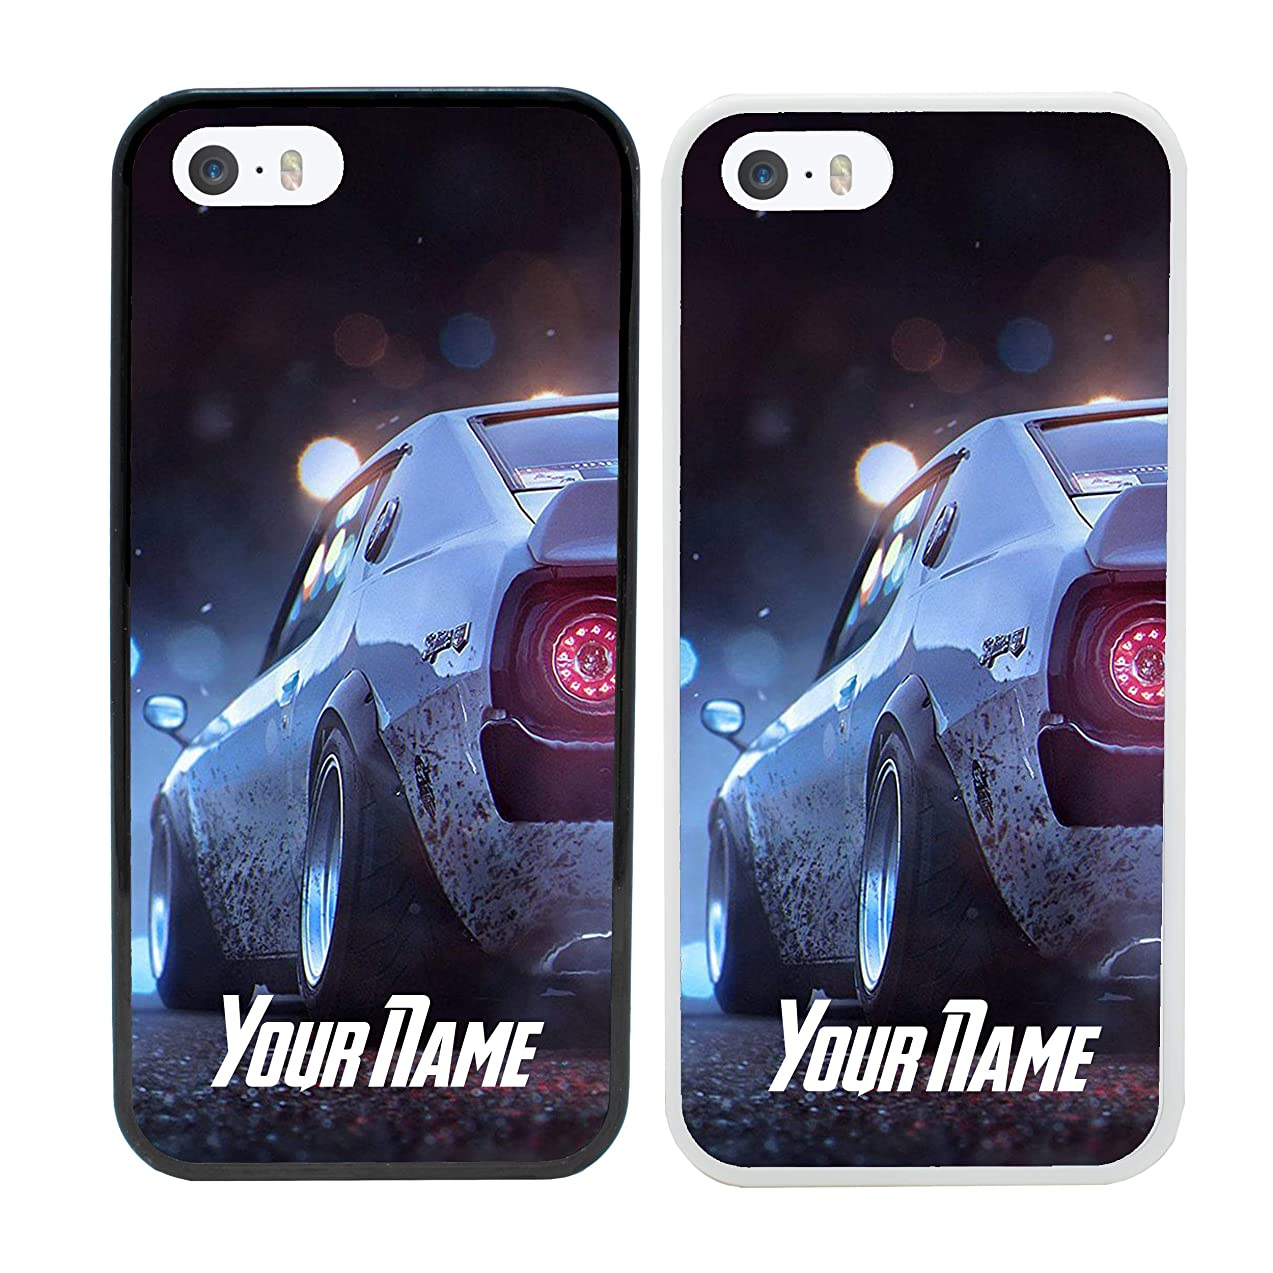 Boy Racer Personalised Phone Case for Apple iPhone 7 Plus Smartphone Custom Cover Personal Your Name Bumper 5.5